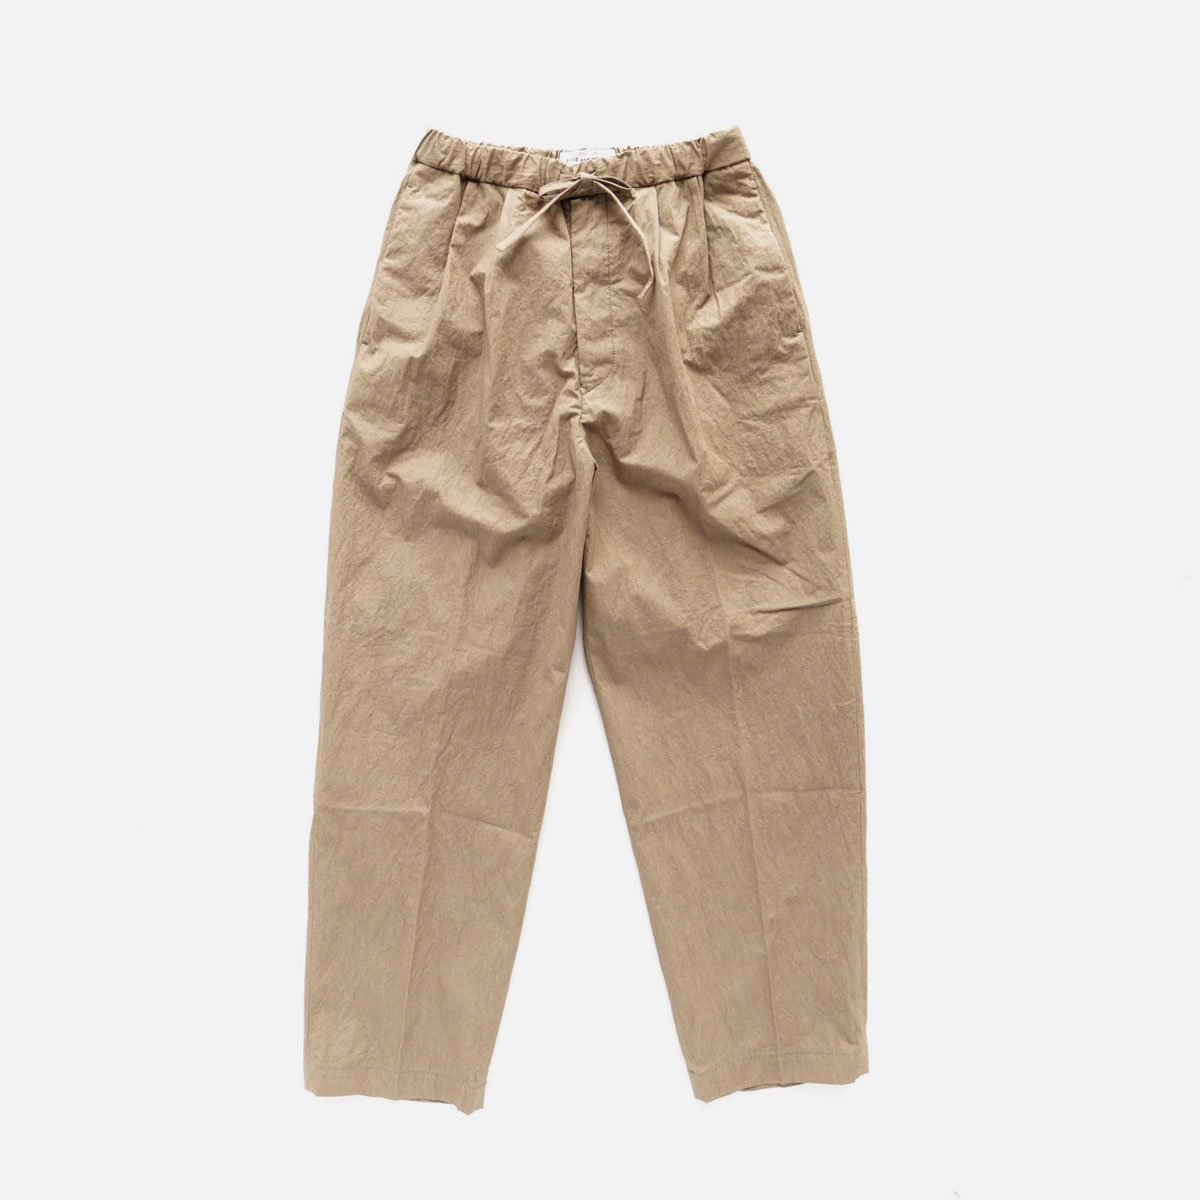 ENDS & MEANS RELAX FIT TROUSERS  (KHAKI)